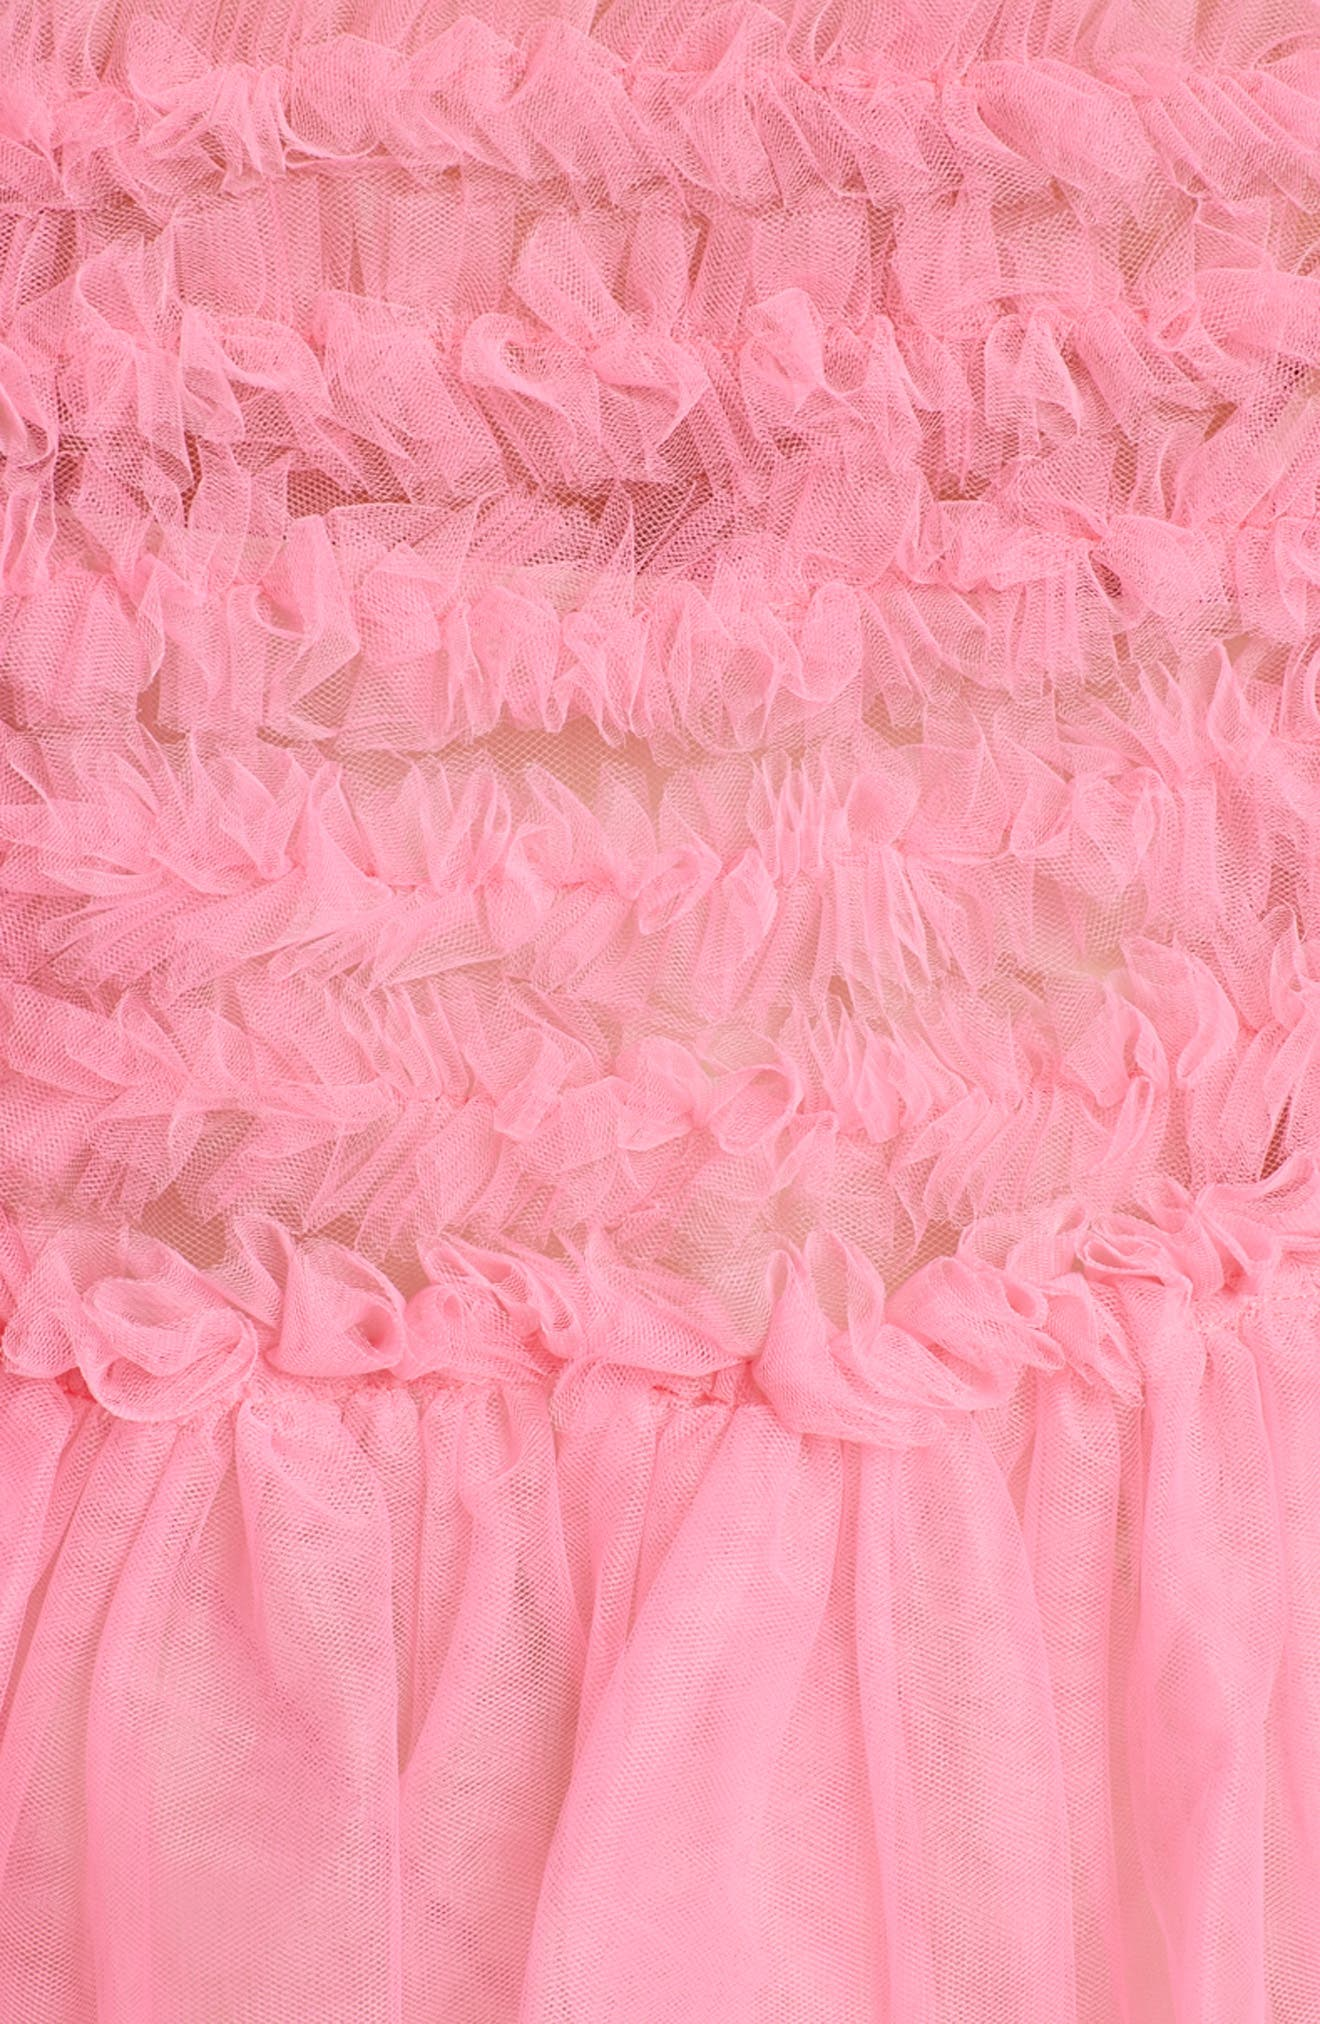 Funky Tulle Dress,                             Alternate thumbnail 3, color,                             Pink